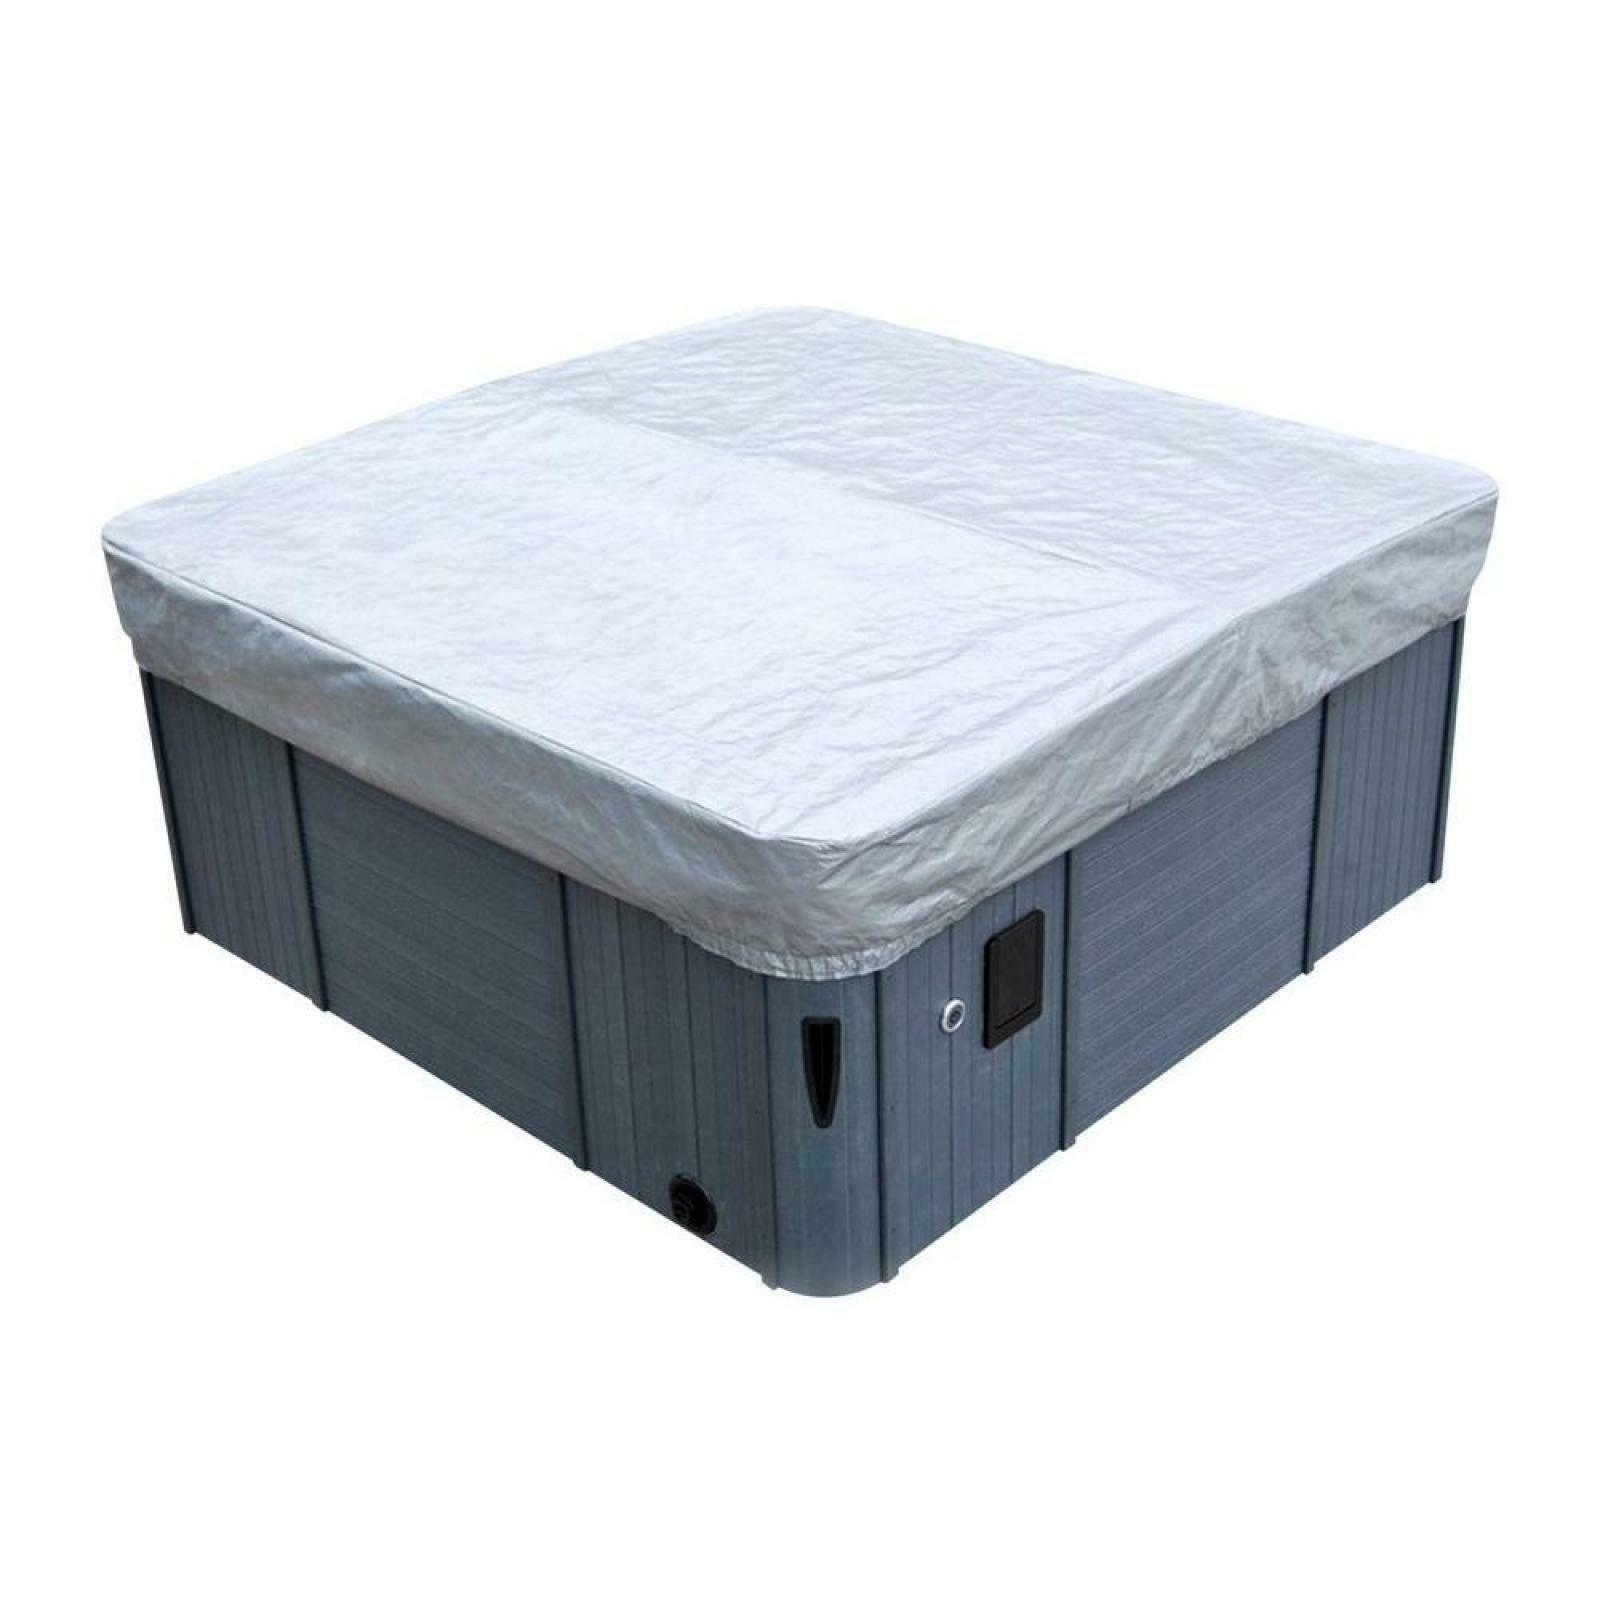 7 ft. Spa Cover Guard Ideal Hot Tub And Spa Covers Durable W